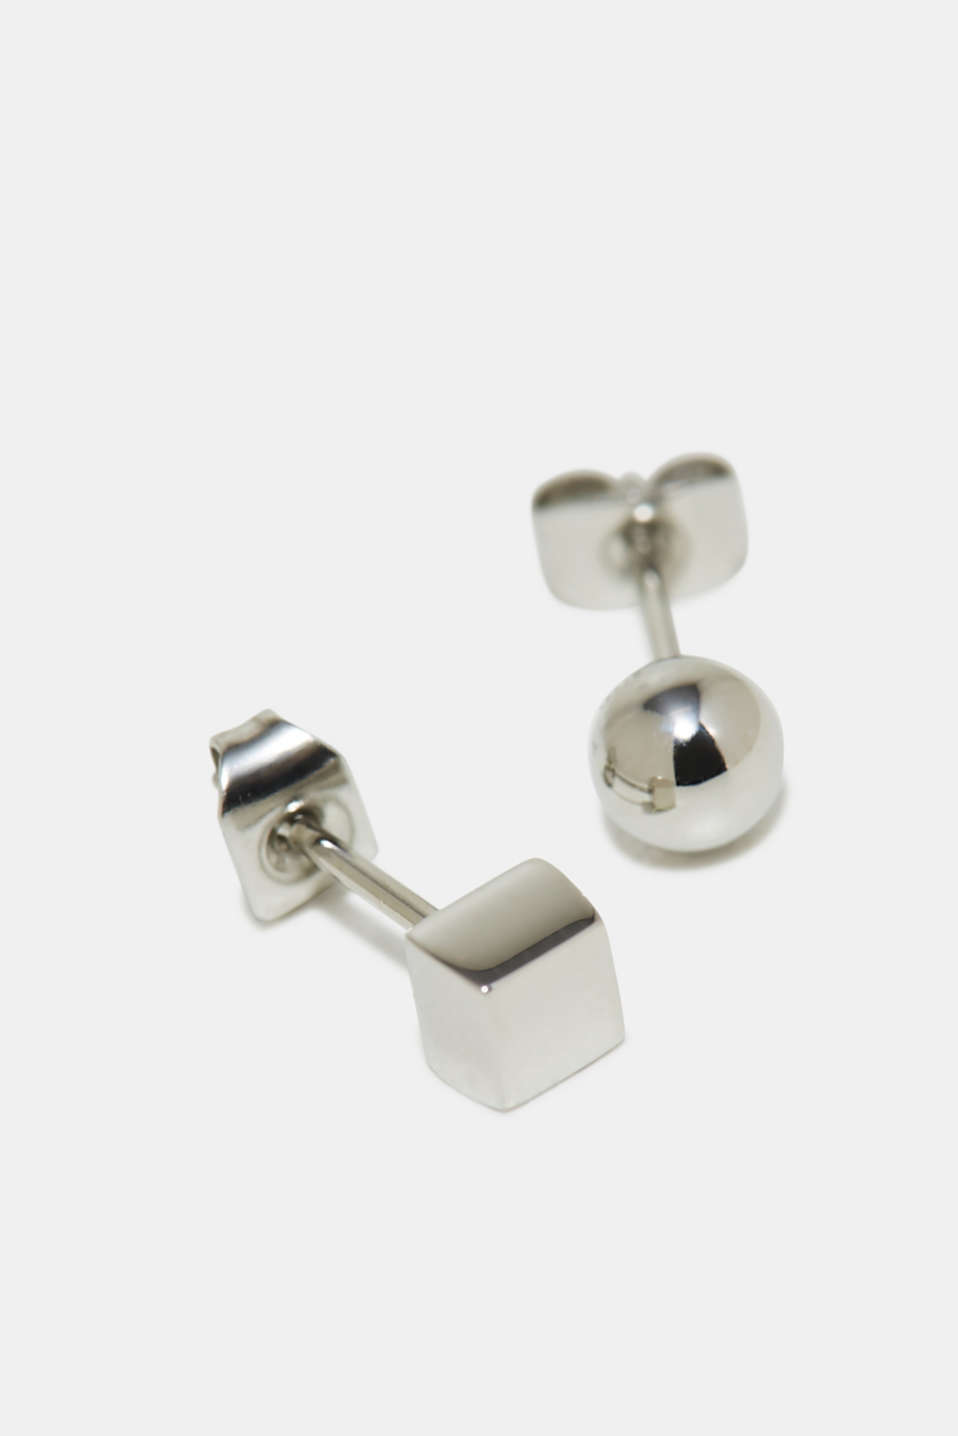 Esprit - Stainless steel stud earrings in different shapes